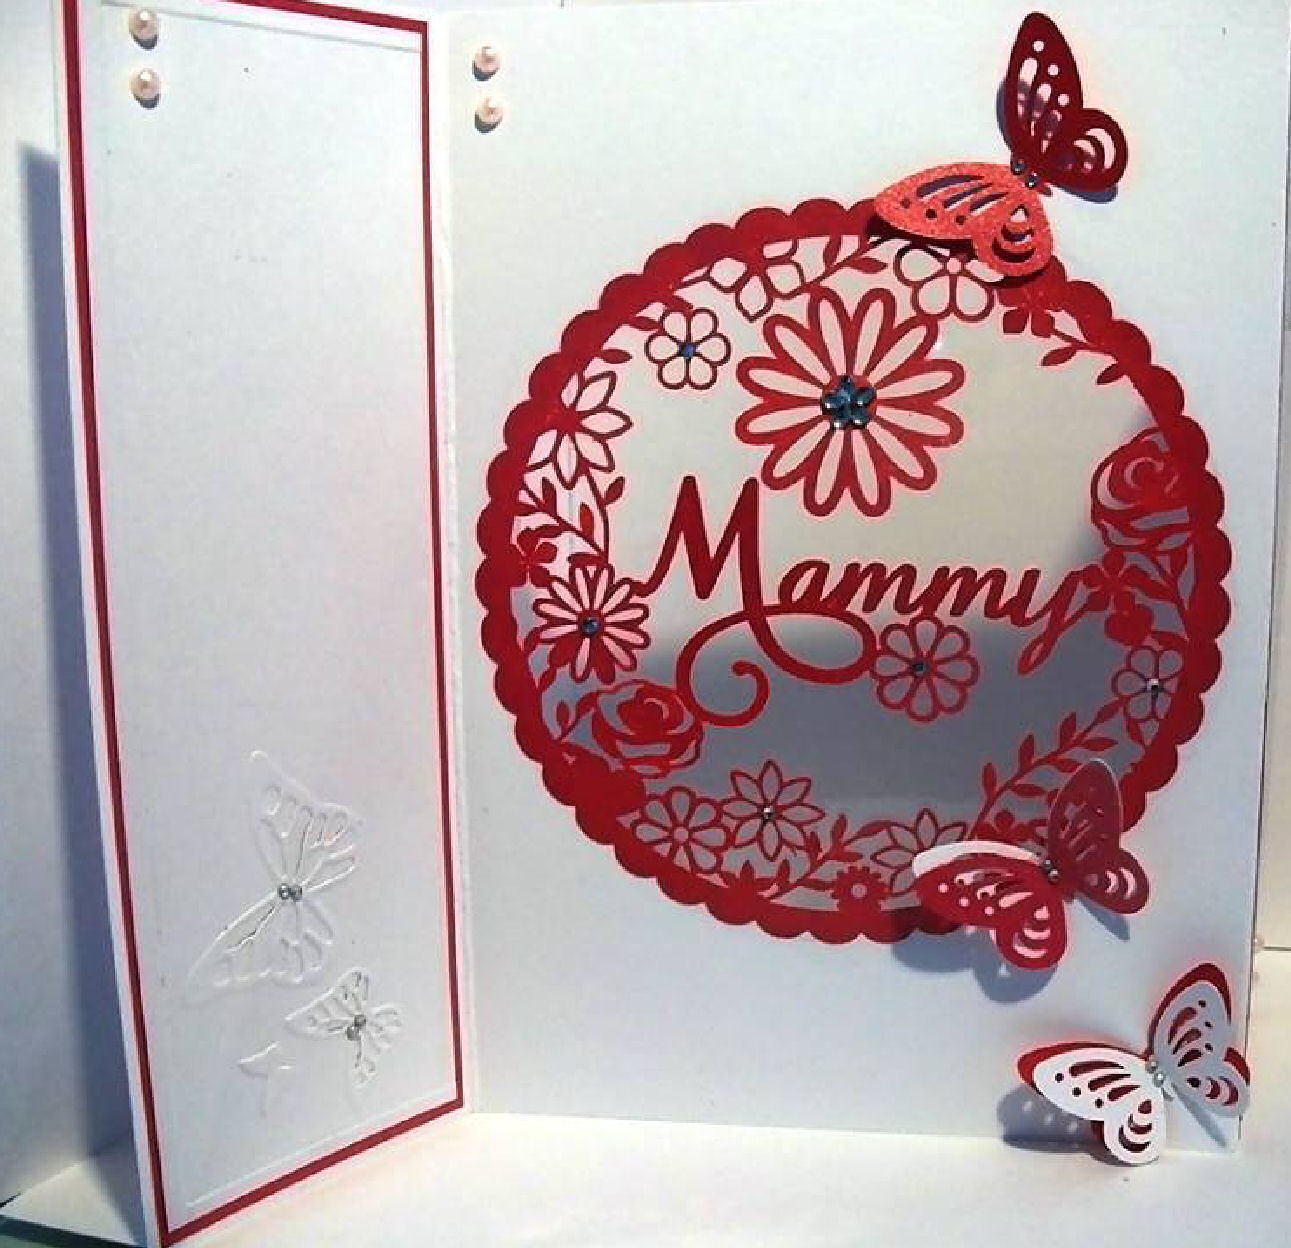 Mammy  decorative round frame ideal for Mother's Day.